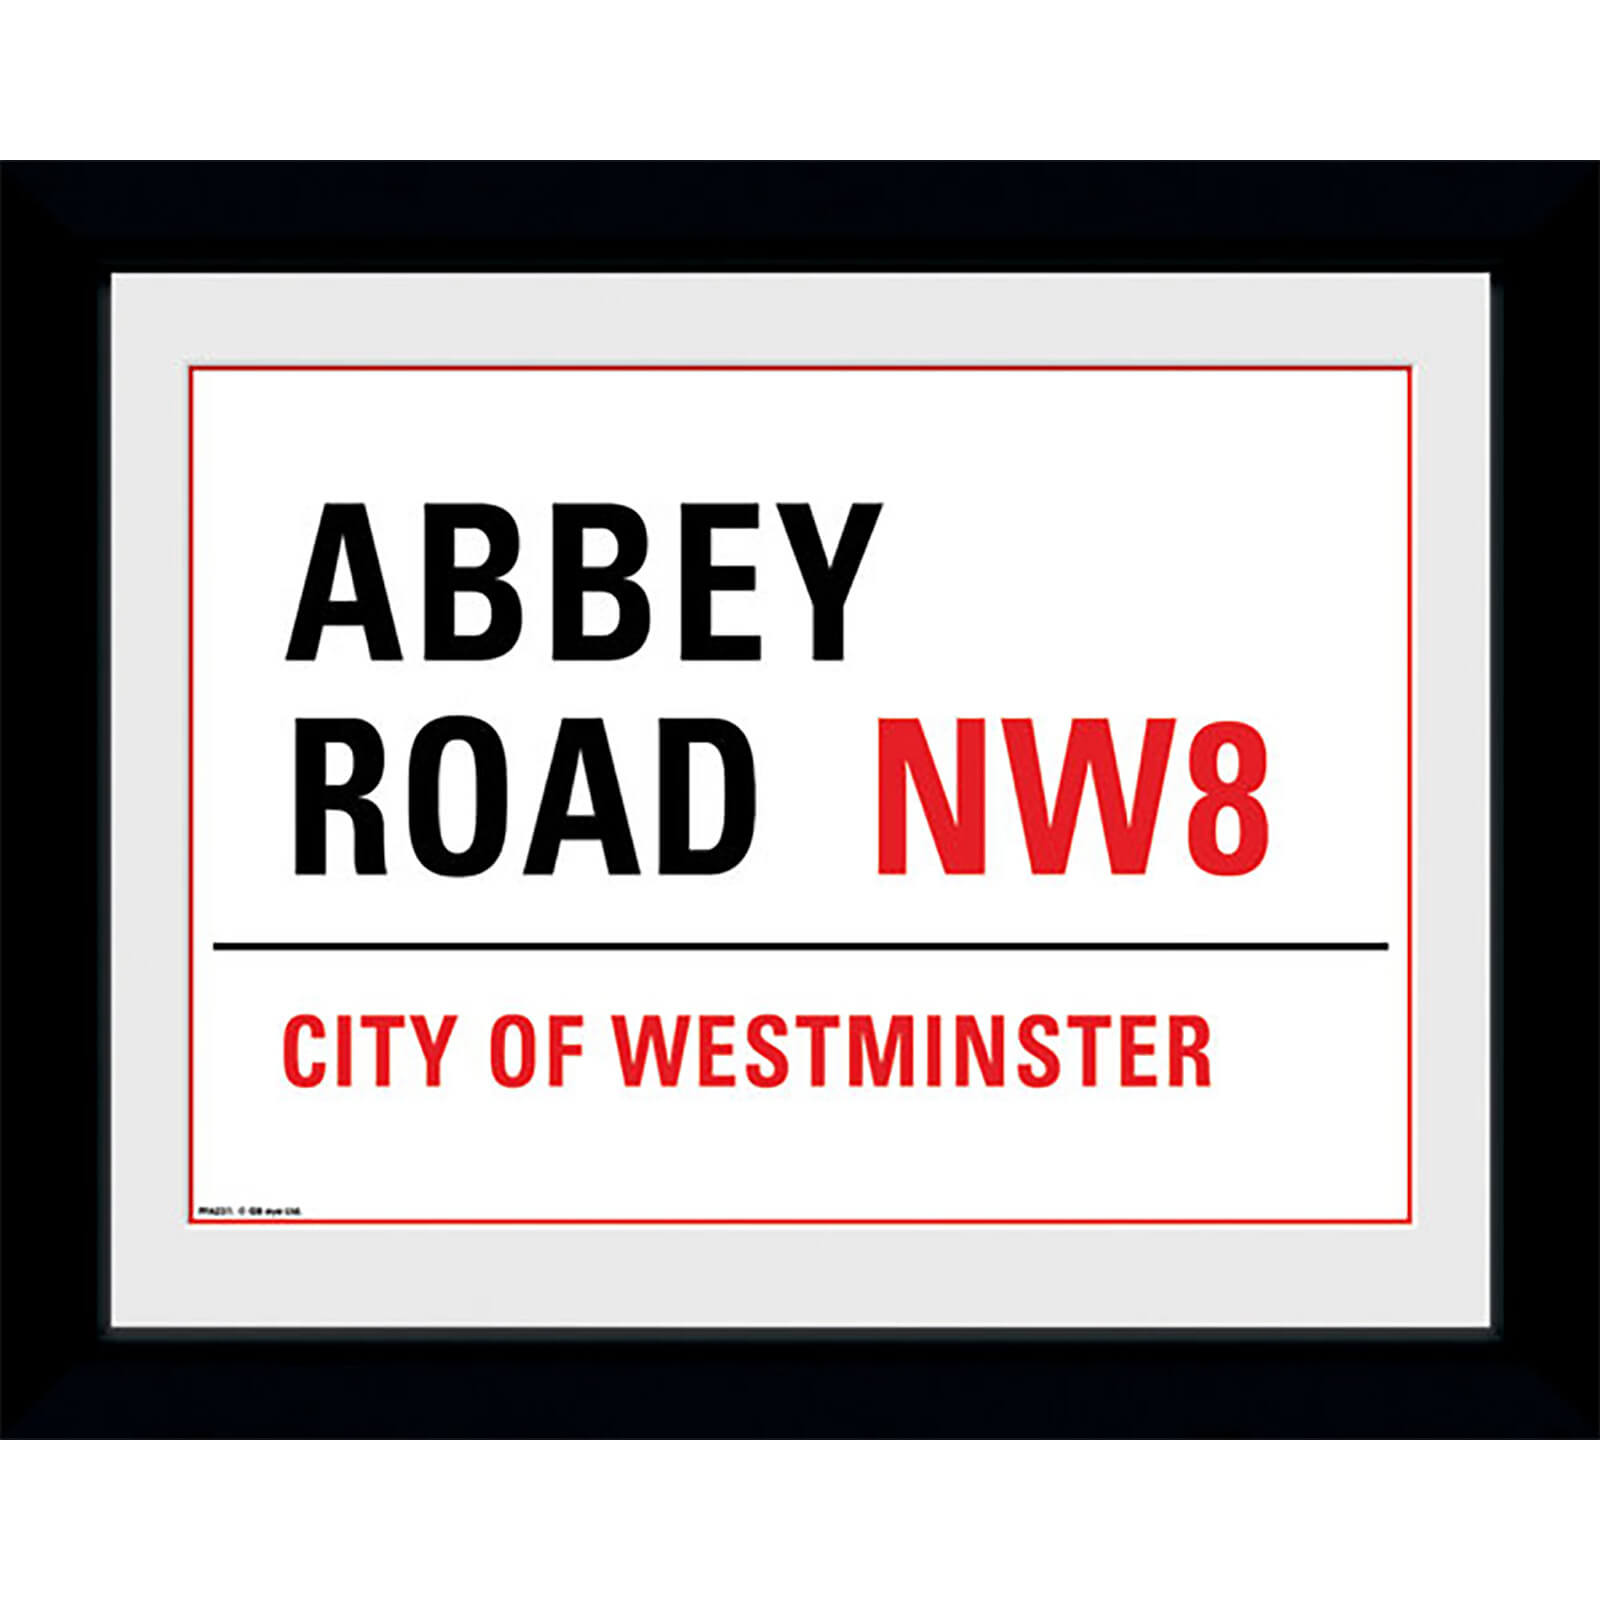 "Abbey Road - 8"""" x 6"""" Framed Photographic"